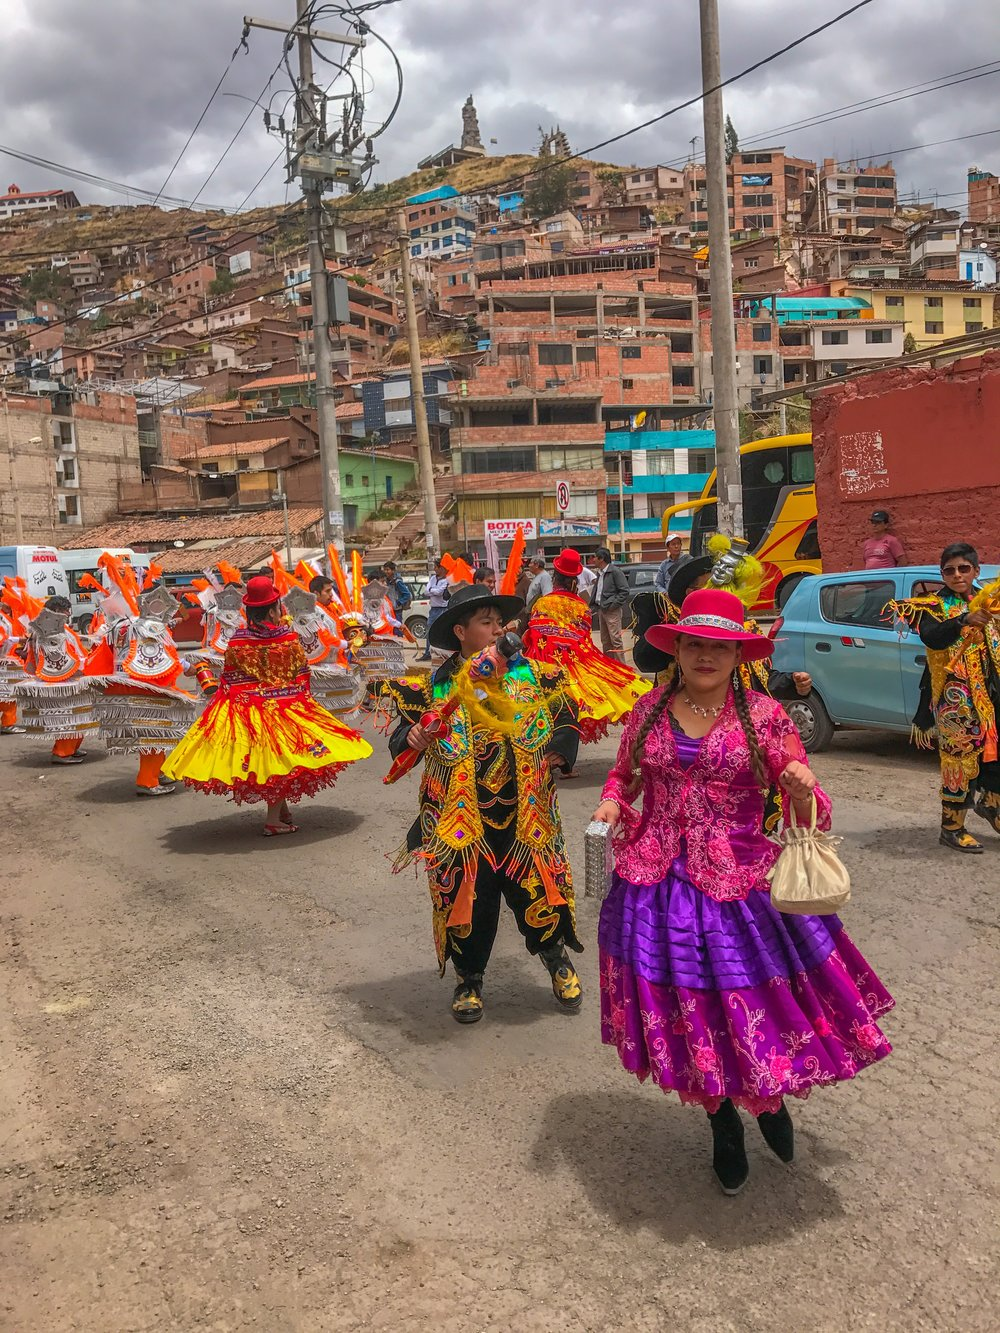 Parade through Cusco